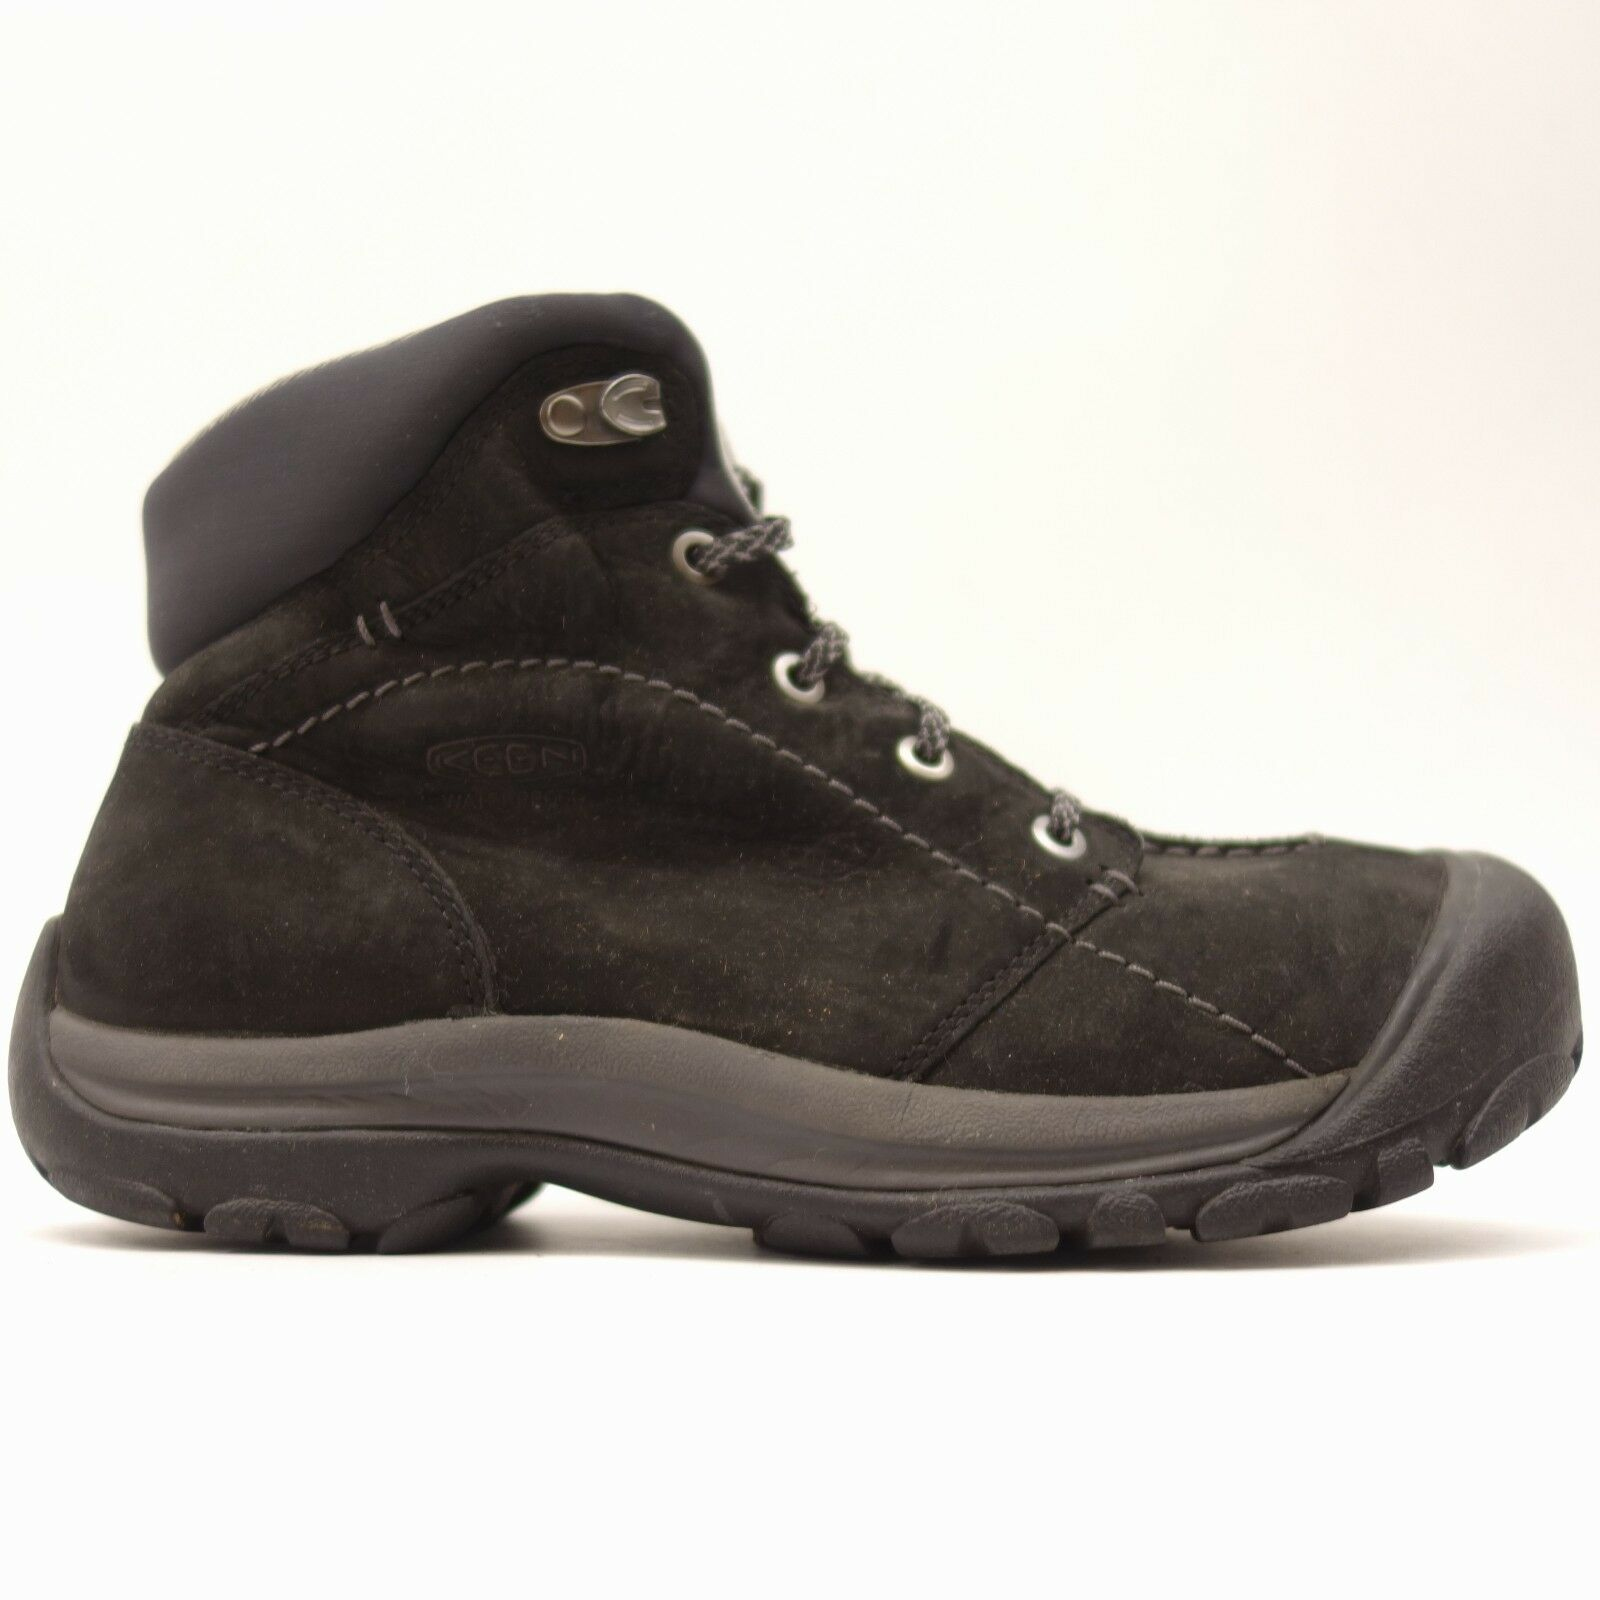 Keen Damenschuhe Kaci Winter Mid Insulated Waterproof Snow Stiefel Schuhes Größe 8